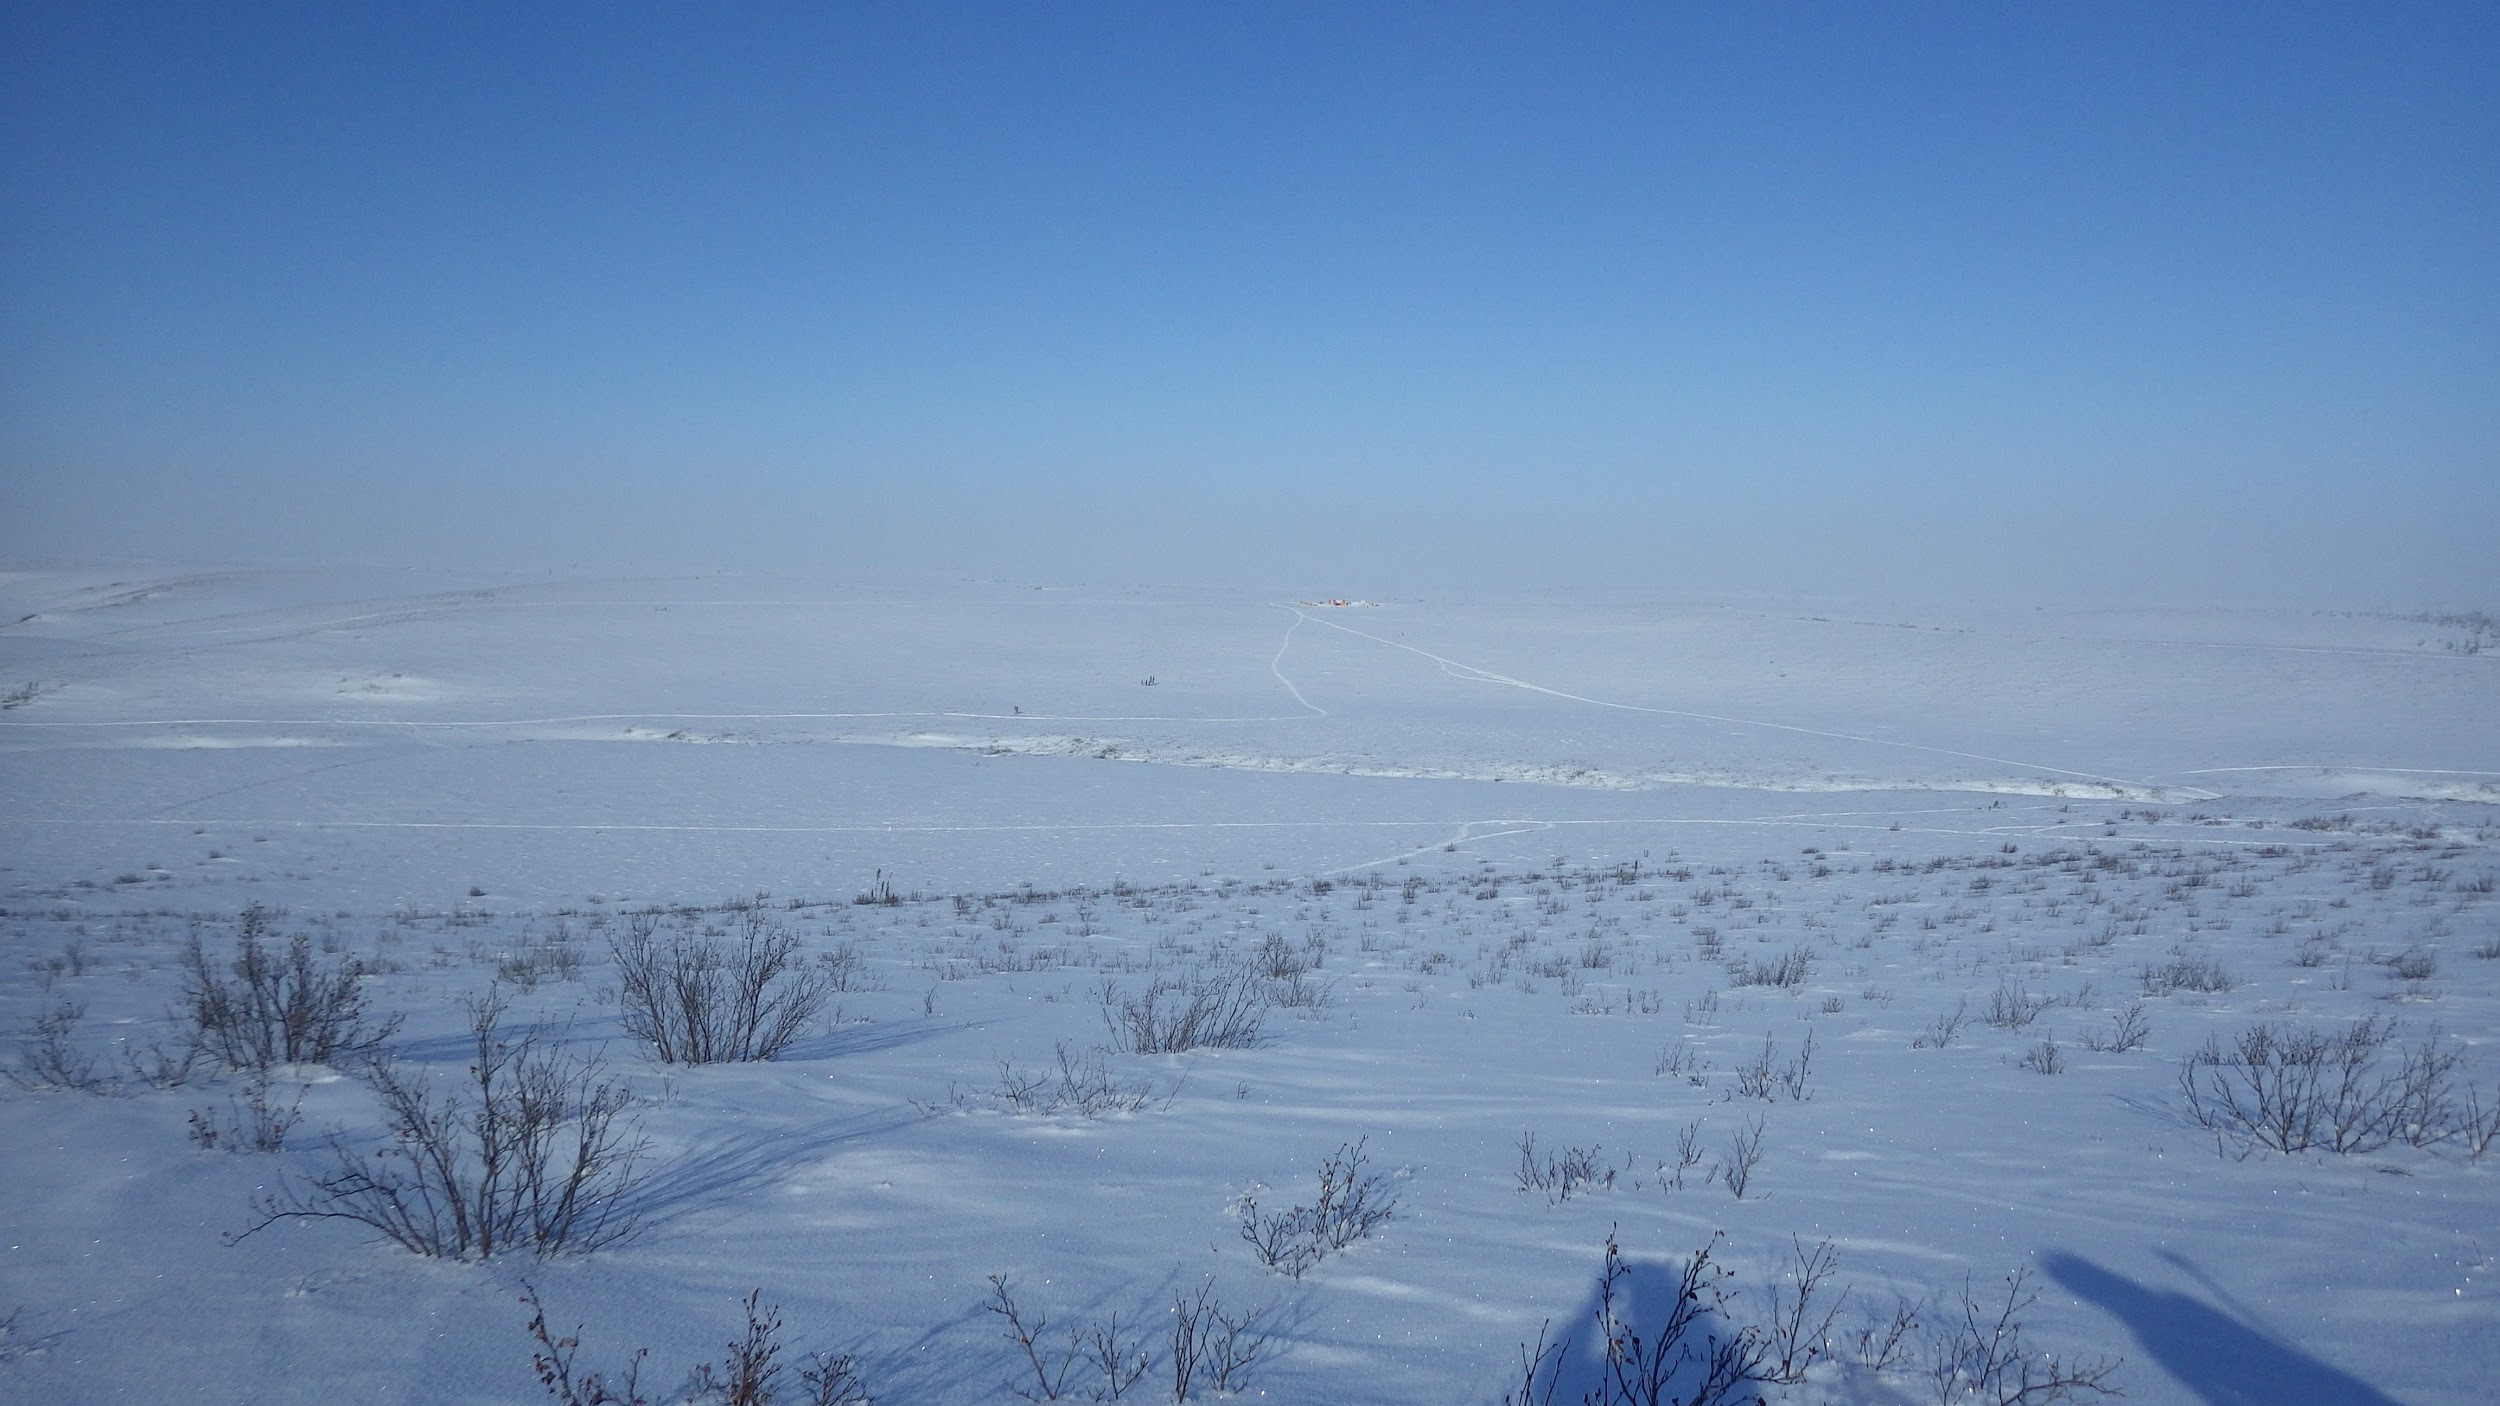 Removing the influence of Arctic snow from satellite microwave observations of the atmosphere